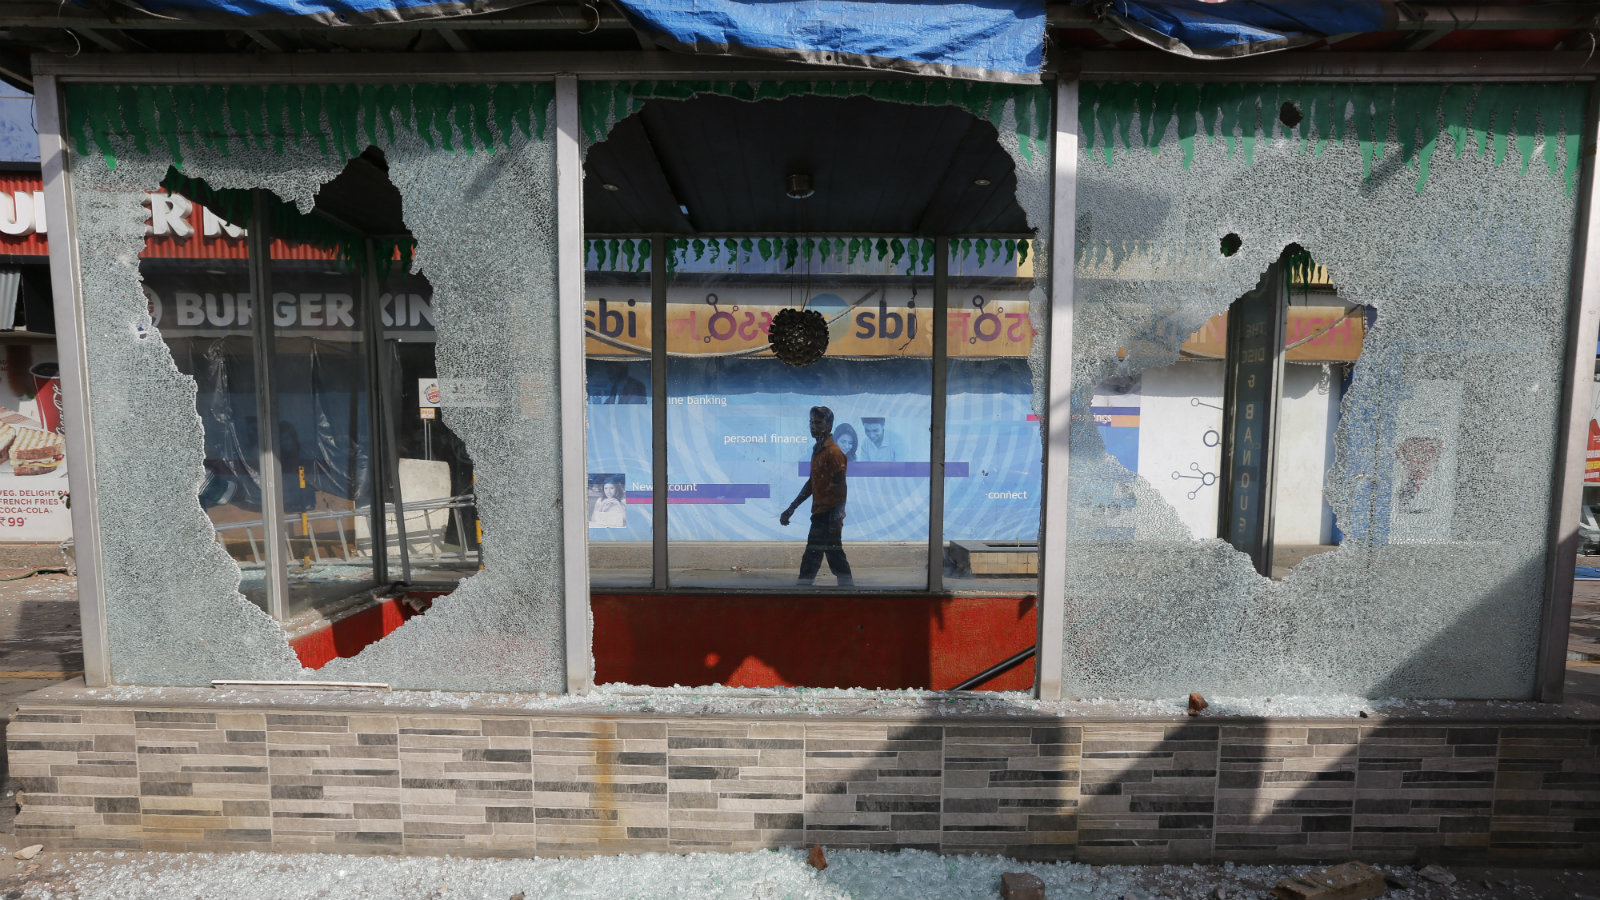 A vandalised store in Ahmadabad, Gujarat, on Jan. 24, 2018. Earlier this week, India's top court lifted a ban imposed by four states on the release of Padmaavat.